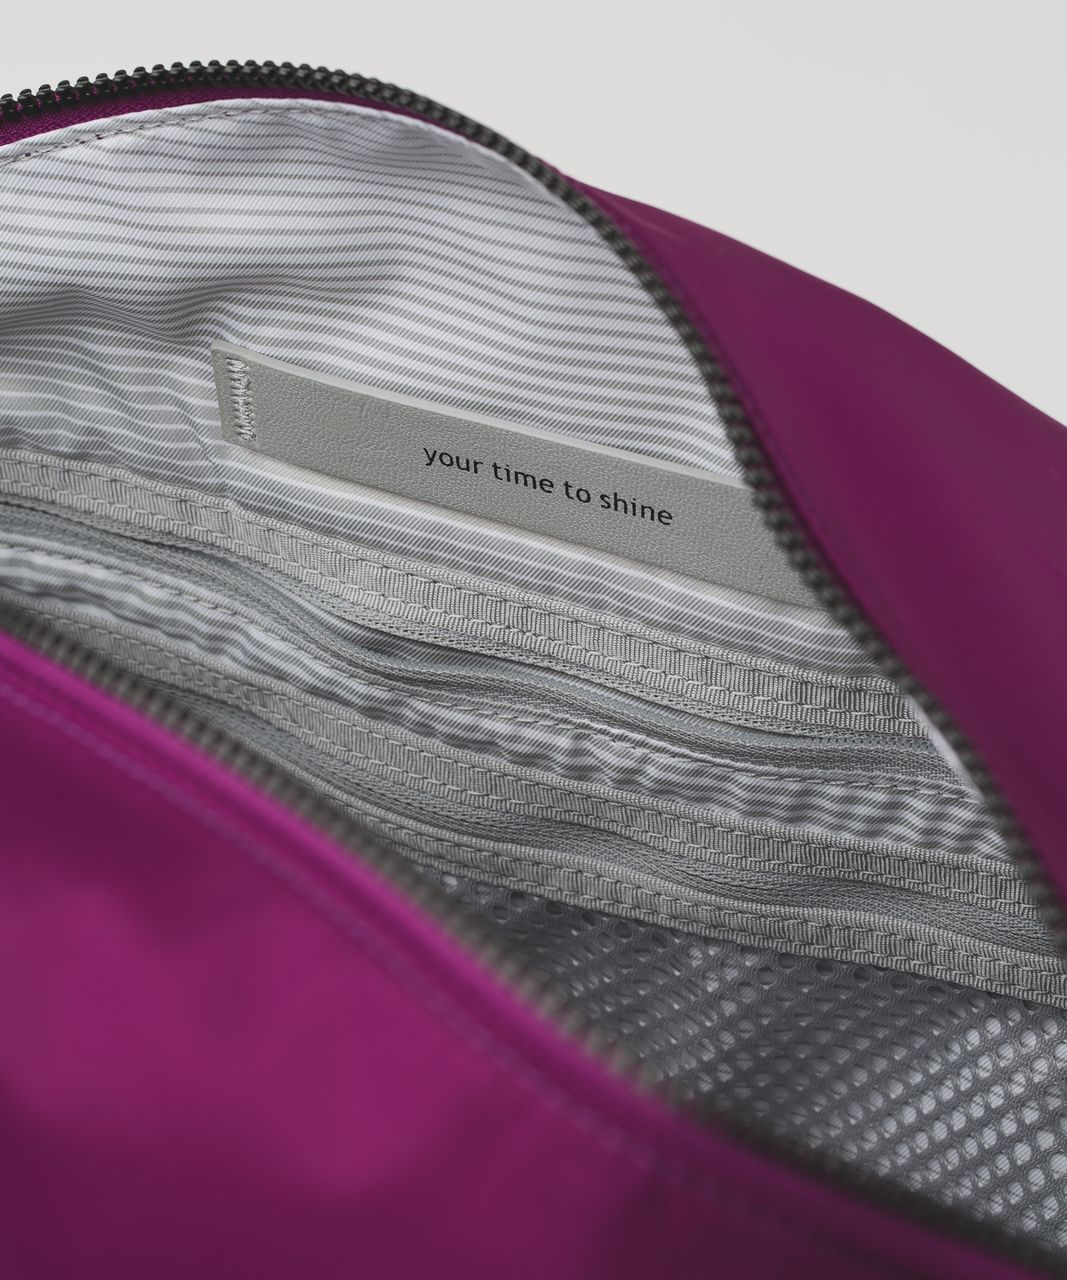 Lululemon Run Ways Duffel - Regal Plum